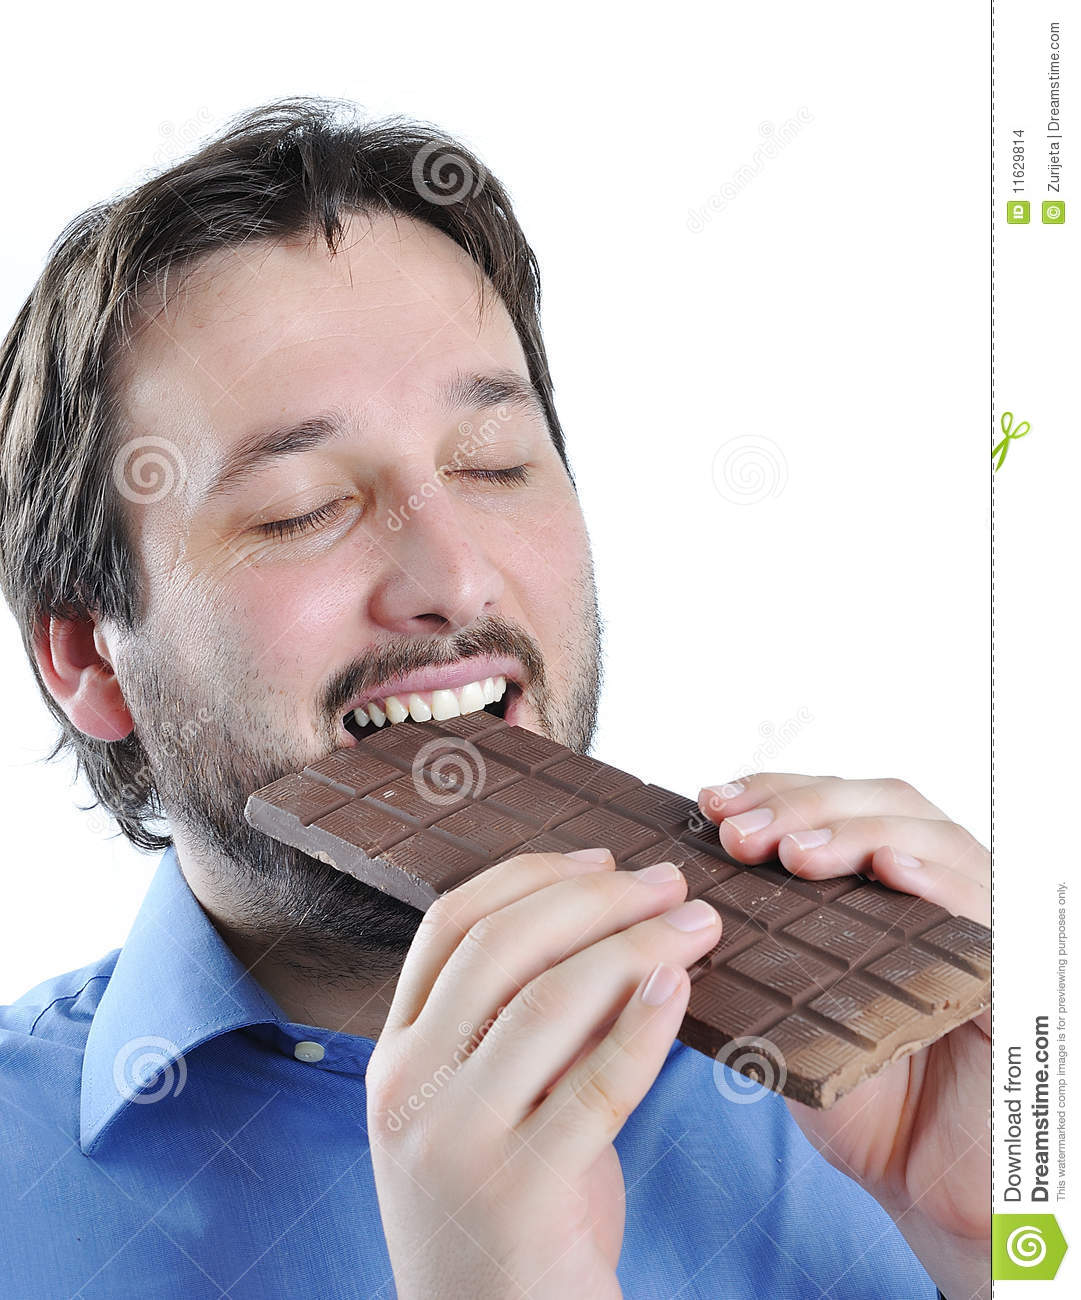 happy-young-man-eating-chocolate-1162981